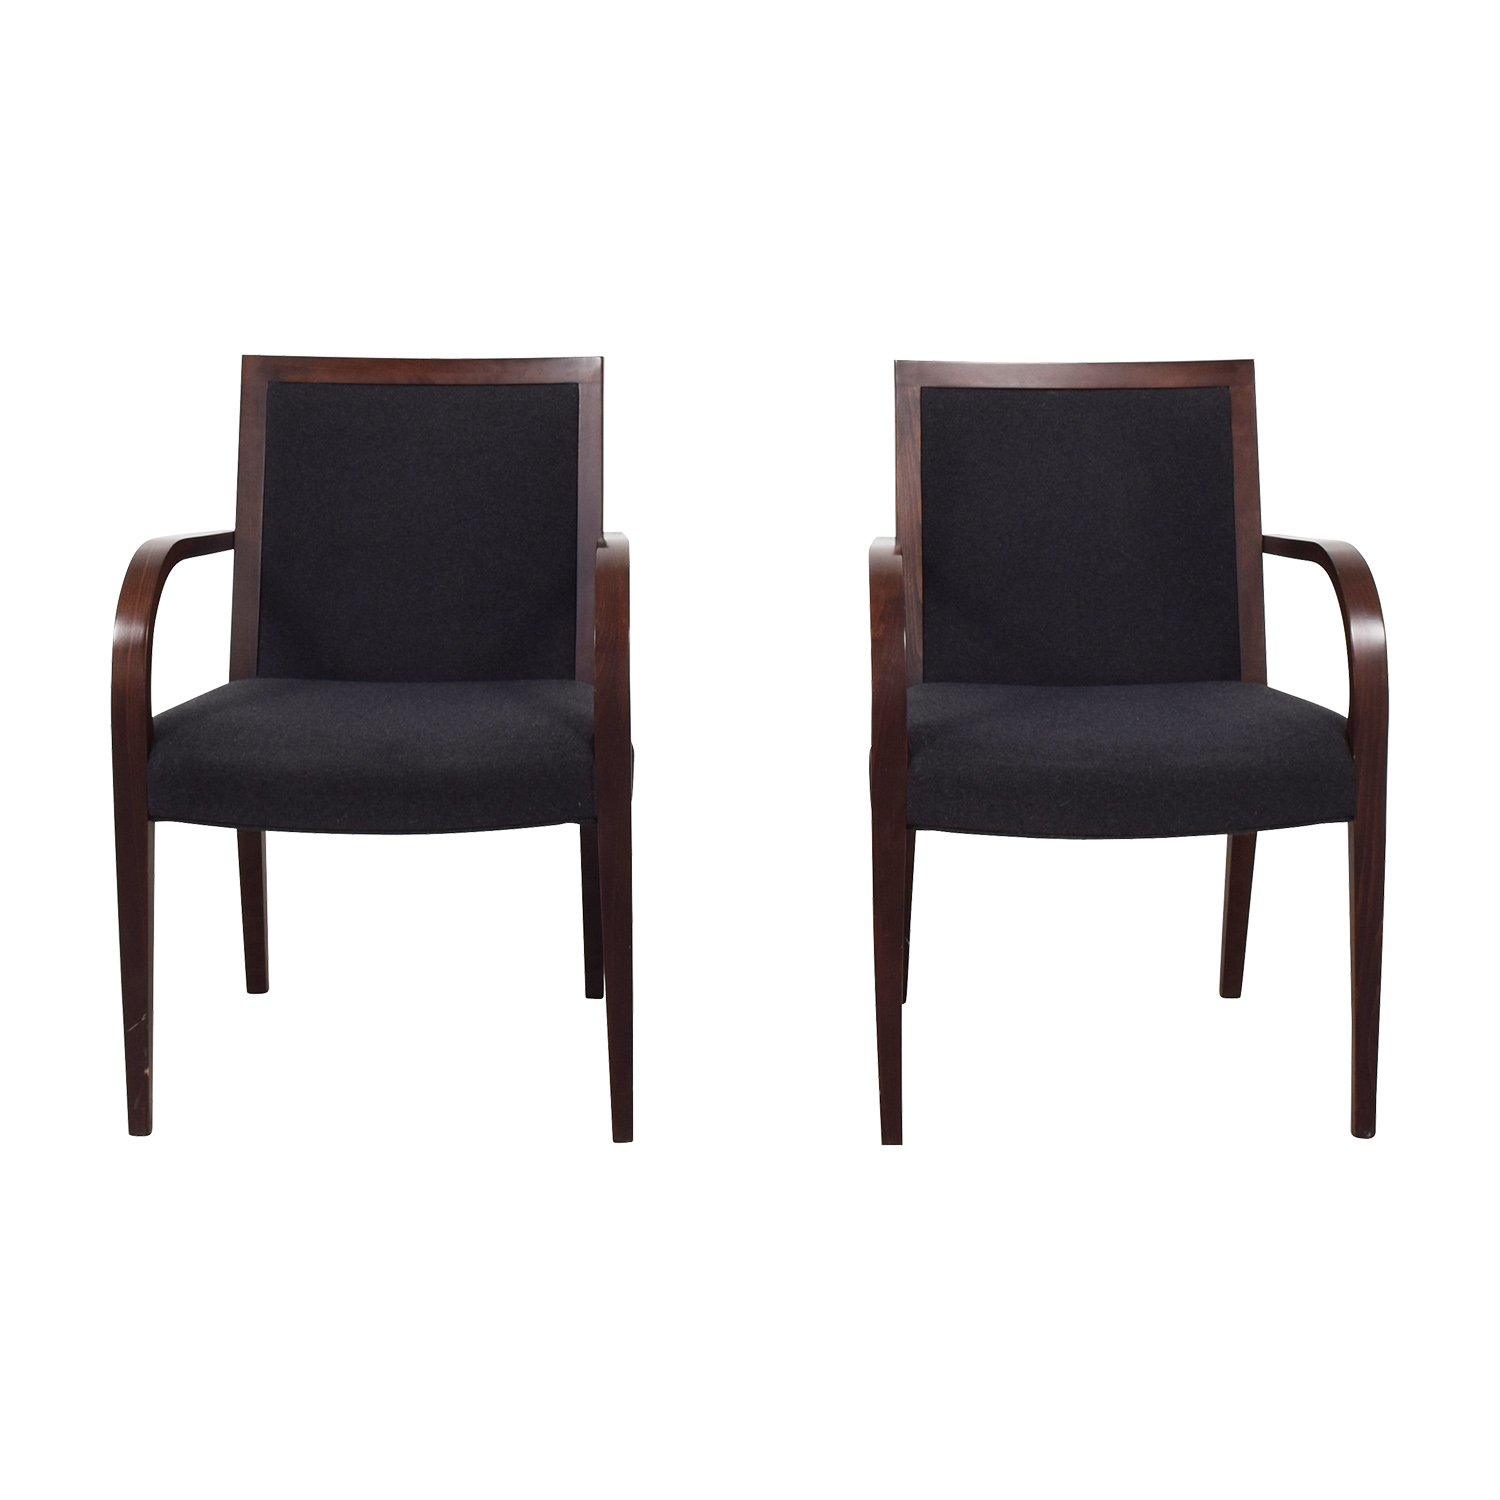 Potocco Potocco Nacy Accent Chairs nyc